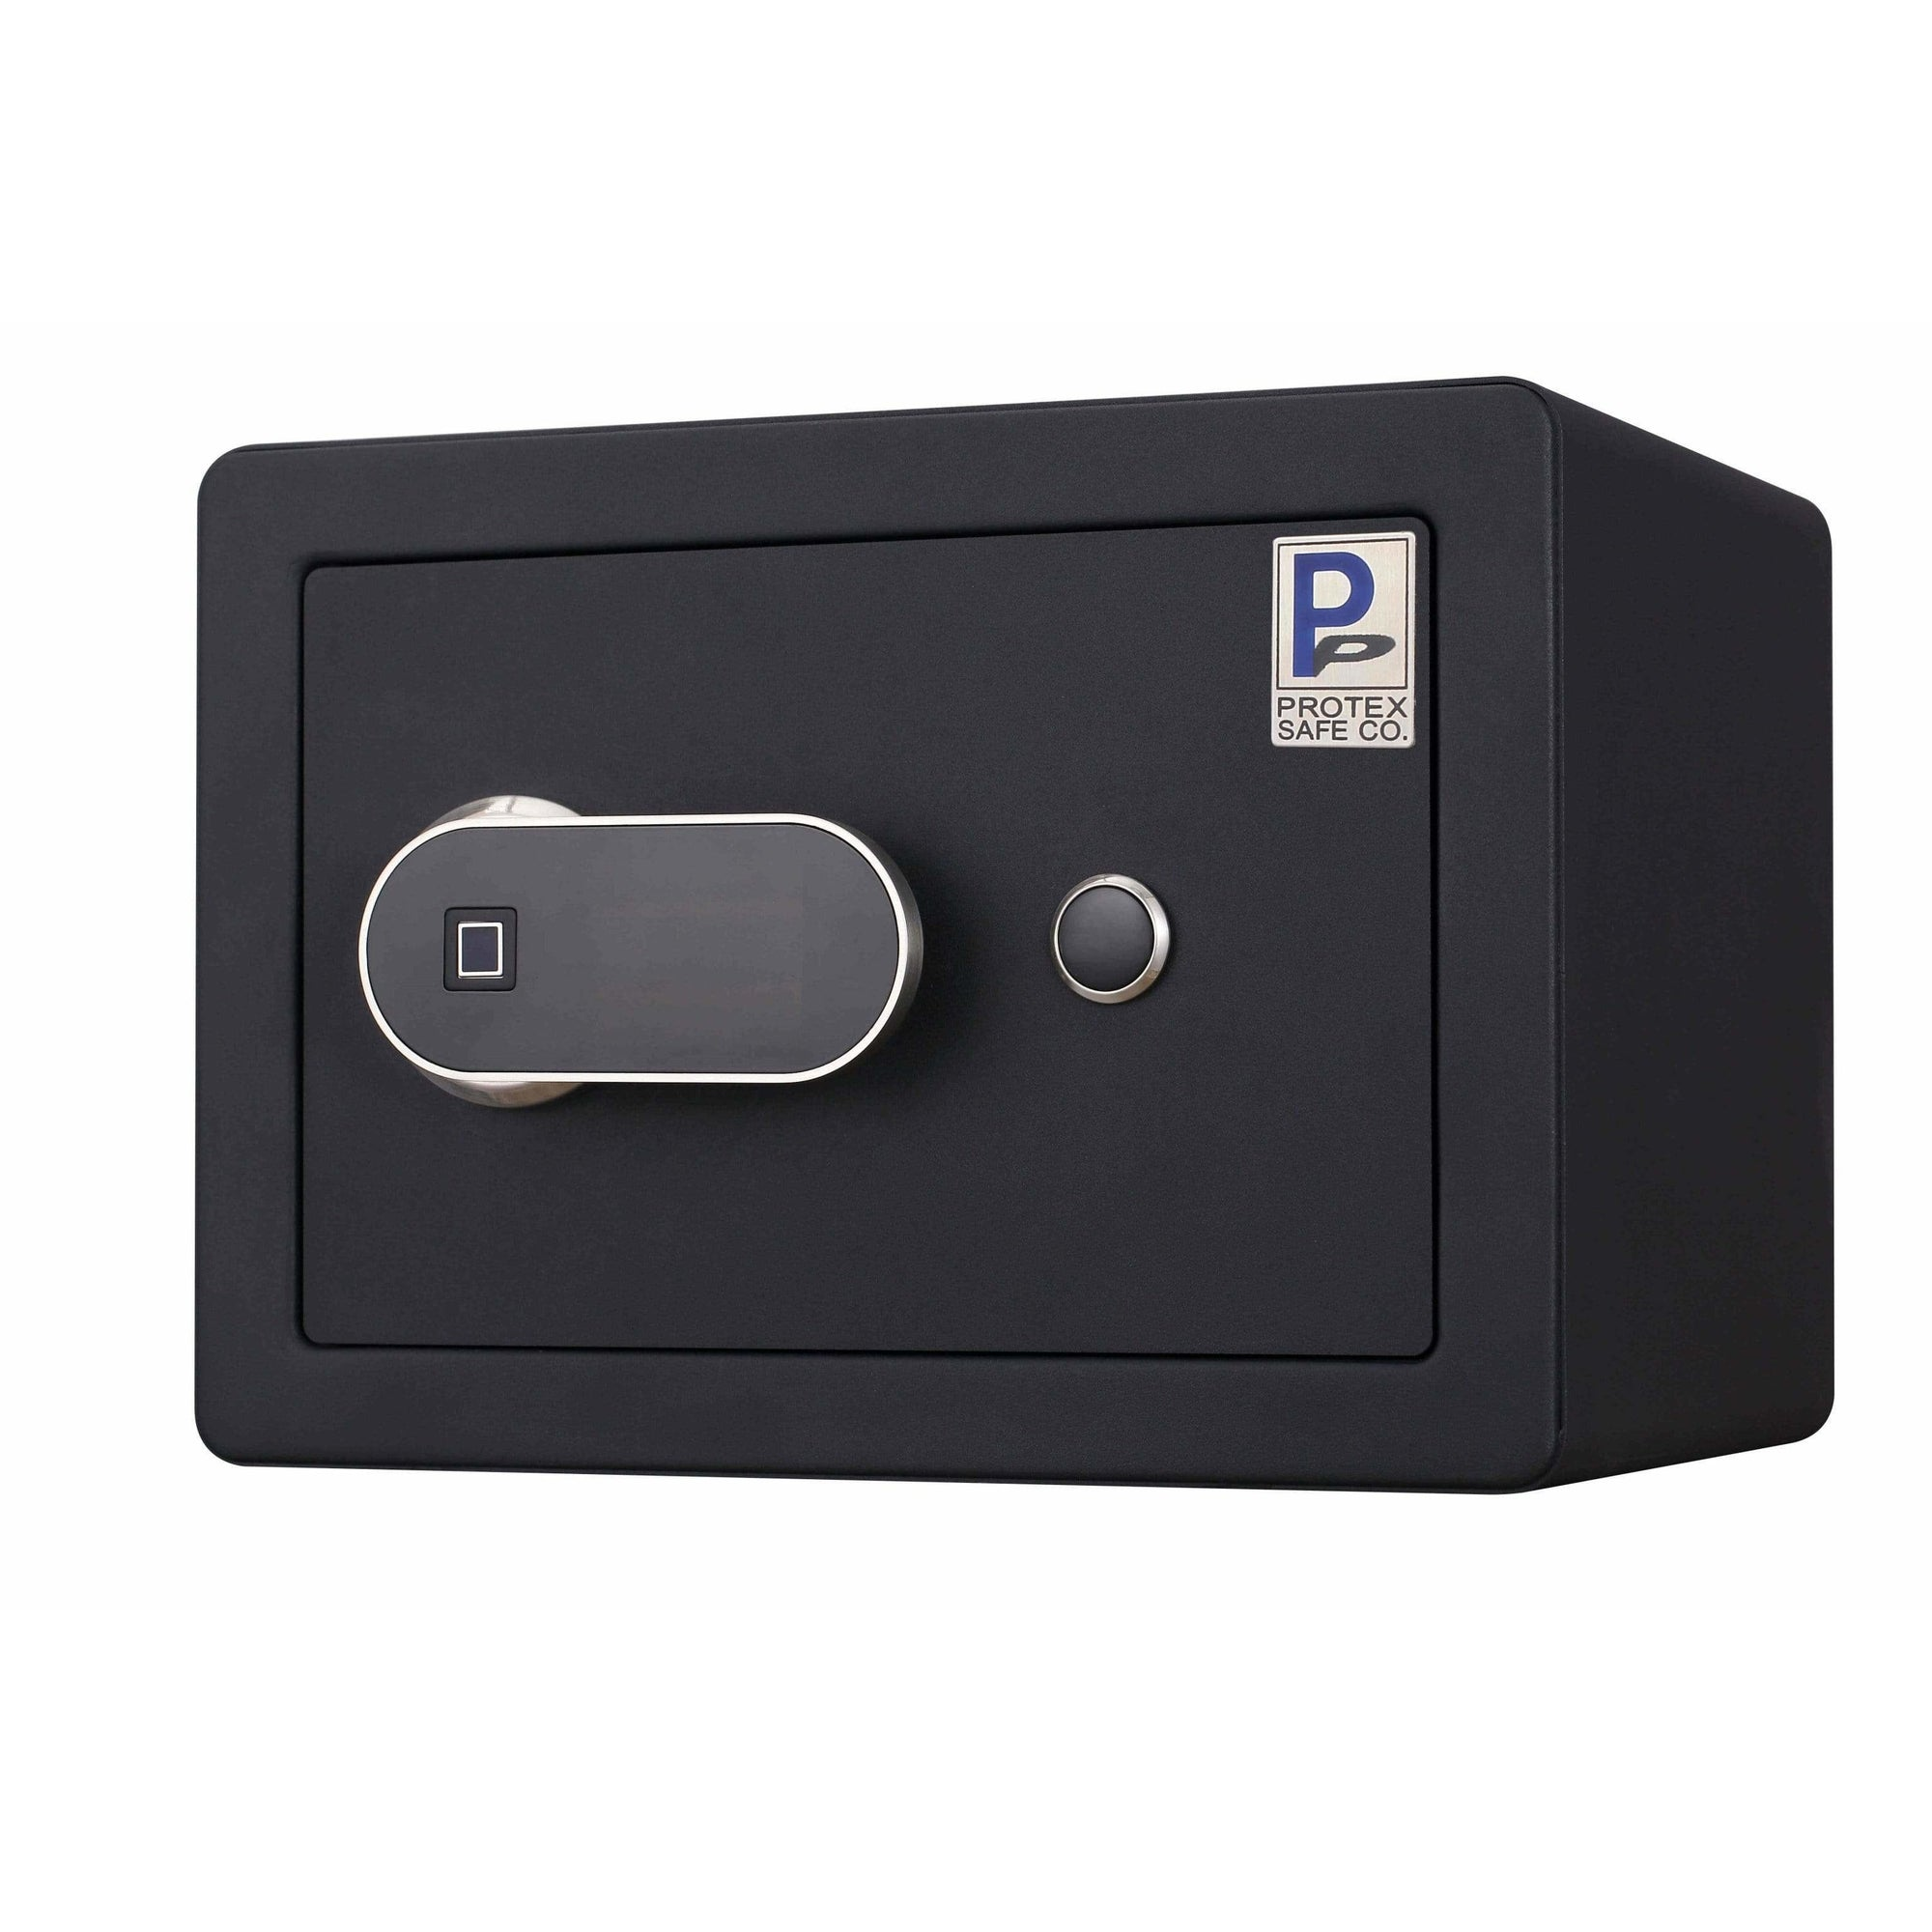 Protex Safes Hotel Safe Protex Hotel, Personal and Home Safe - F2-2353 F2-2353